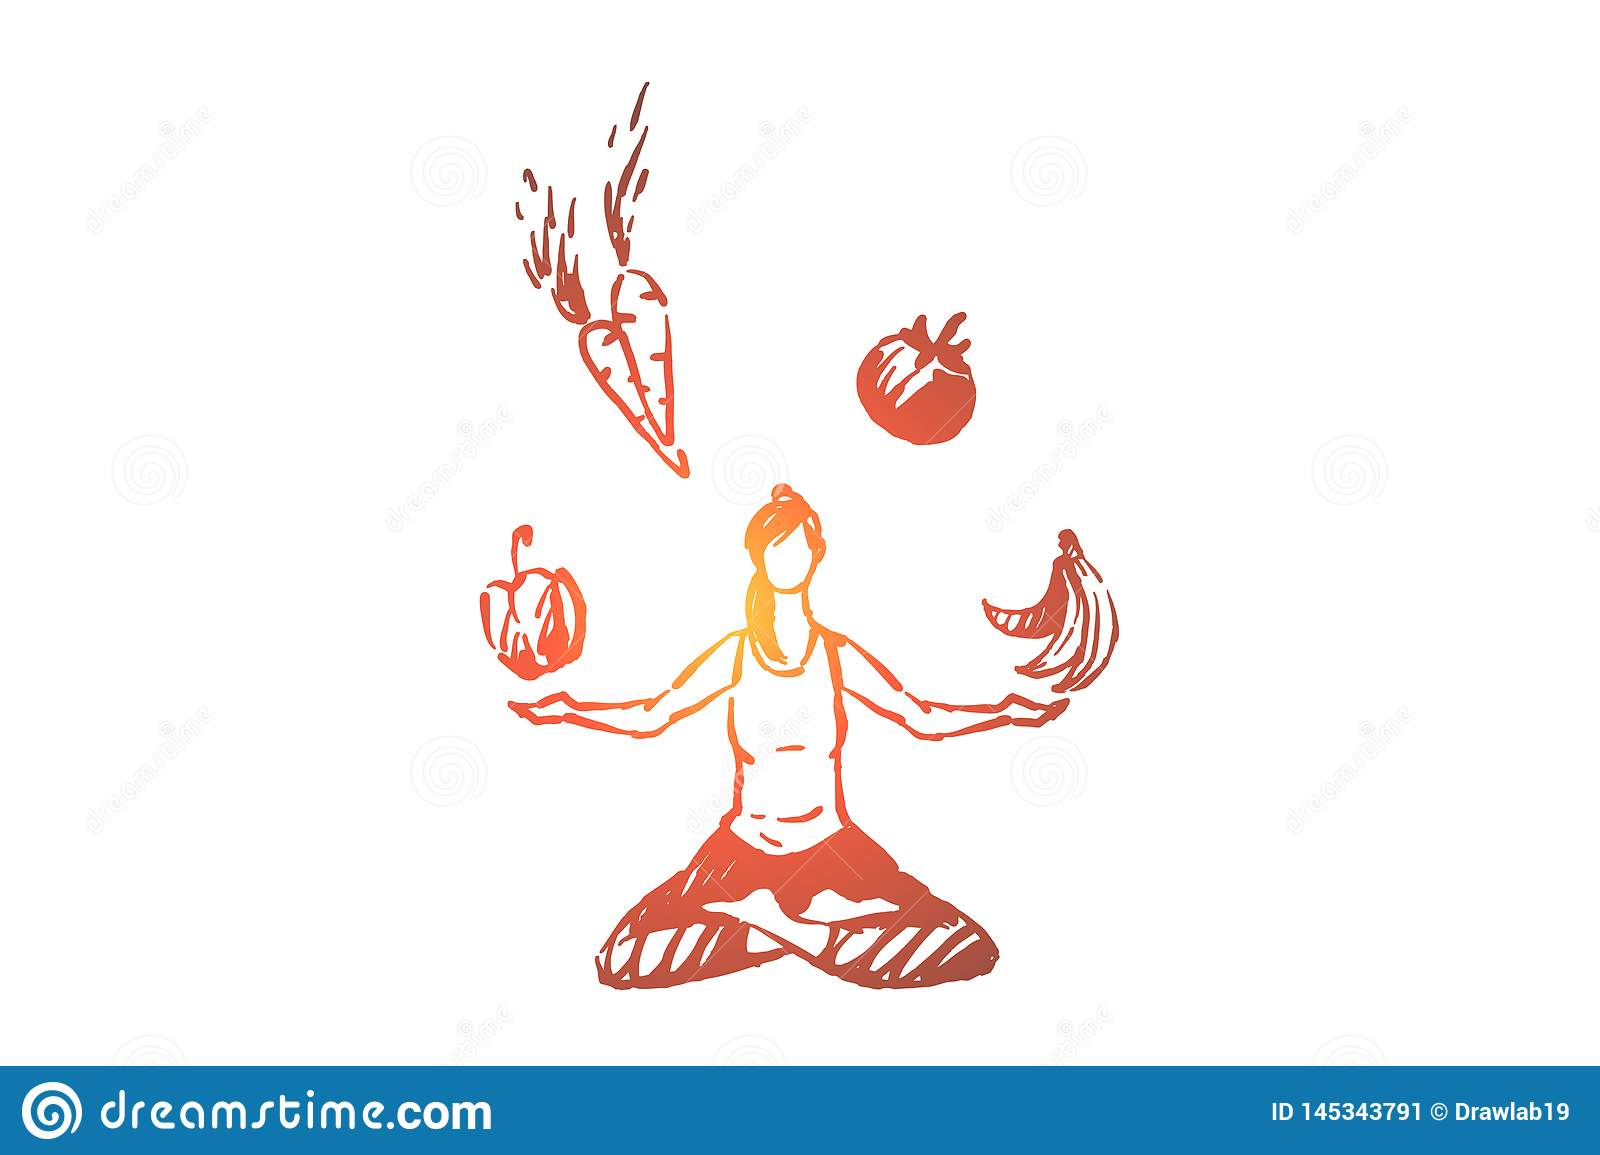 Young Woman Sitting In Lotus Pose Meditation And Fitness Organic Fruits And Vegetables Healthy Lifestyle Stock Vector Illustration Of Meditation Exercise 145343791